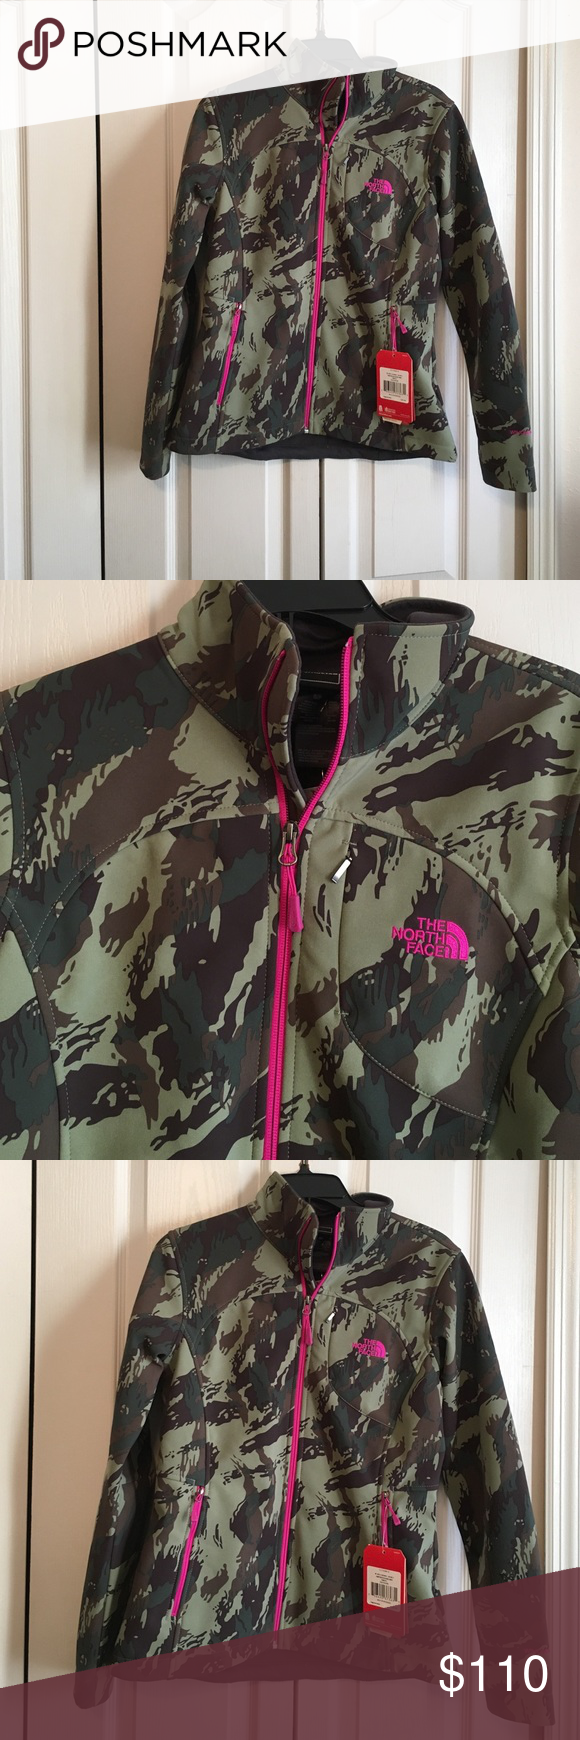 Ladies North Face Jacket Size Small NWT Ladies North Face NWT Size Small The North Face Jackets & Coats